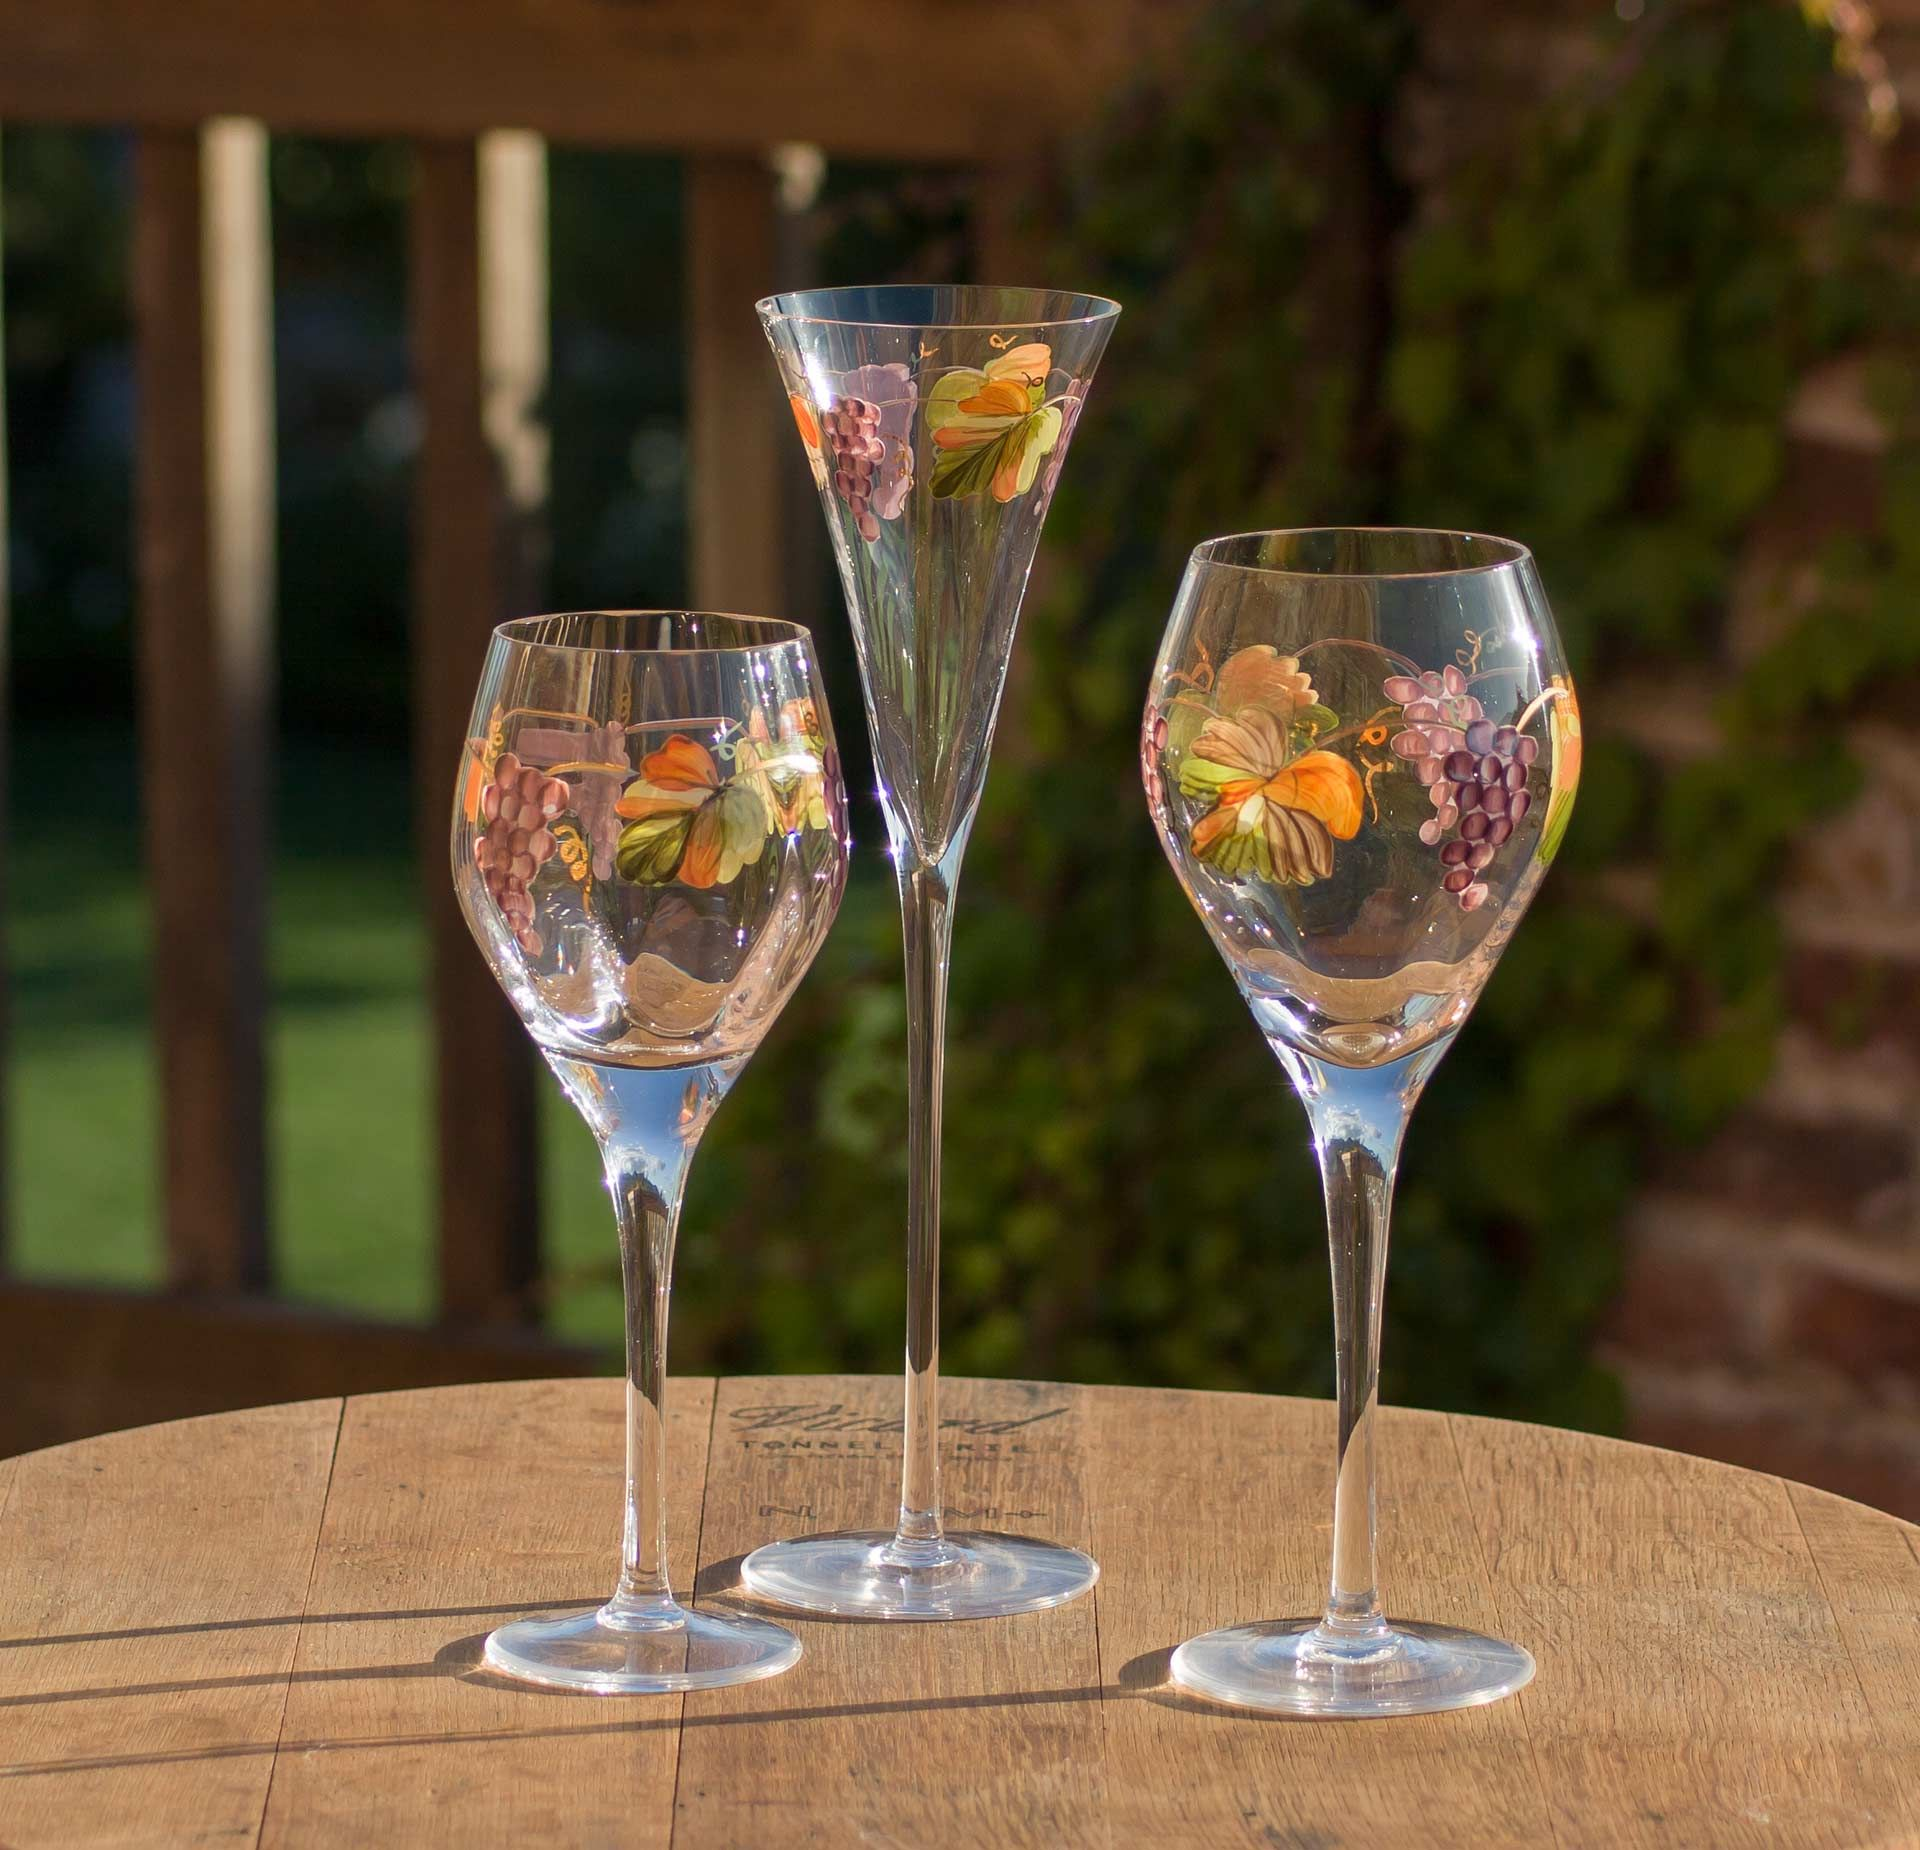 Wine glasses for website product listing